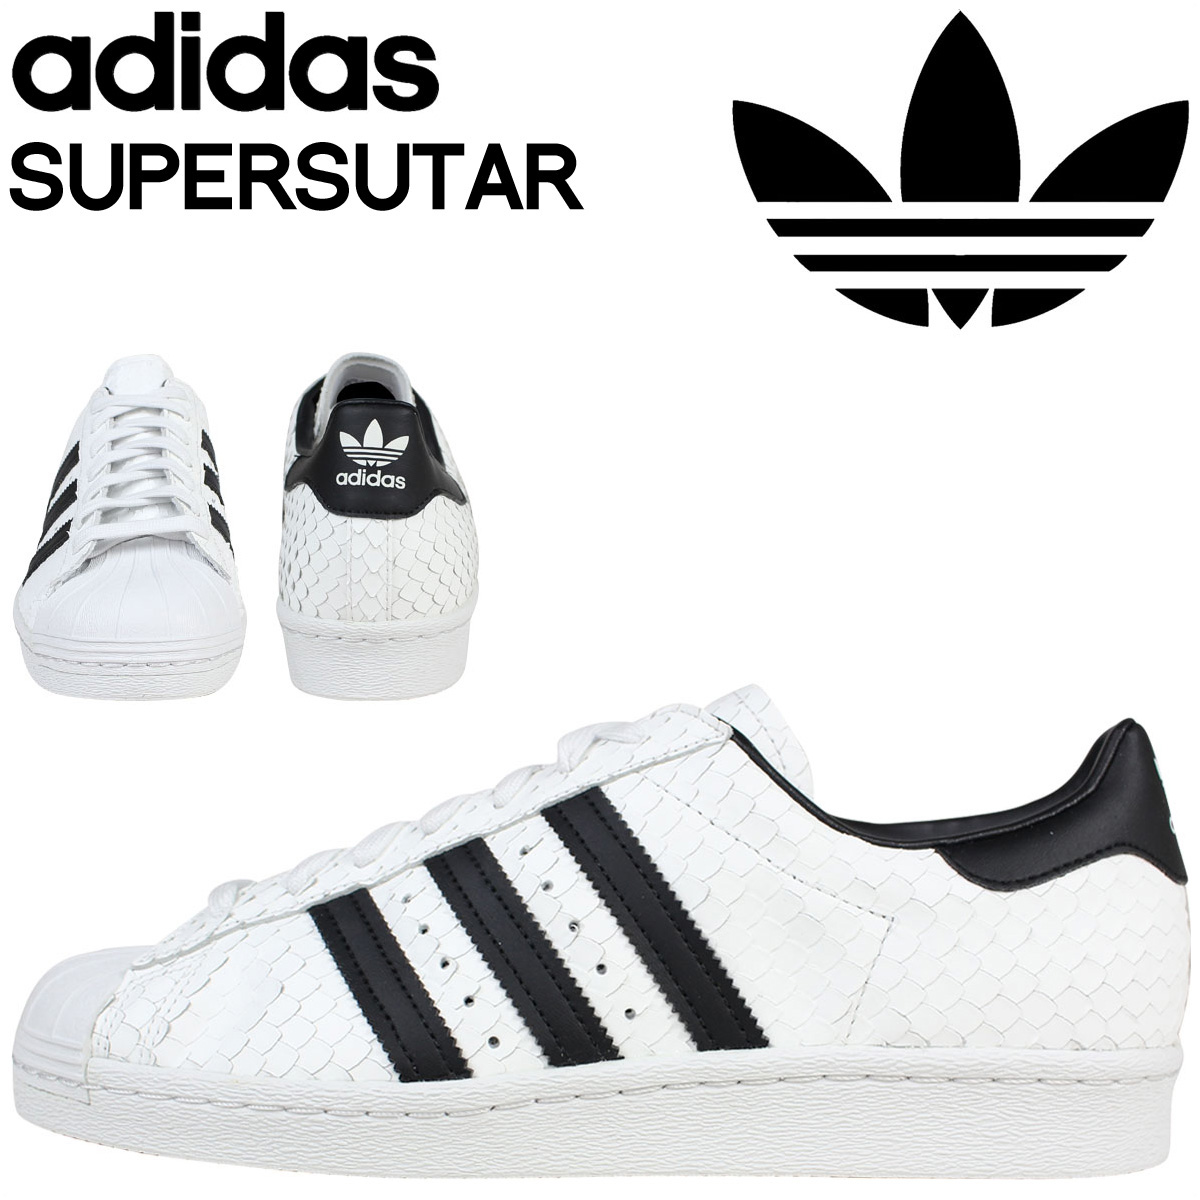 3a9704a4 Classic Mark symbolizes the adidas three lines are simple yet also said the  face of the brand impact and the classic